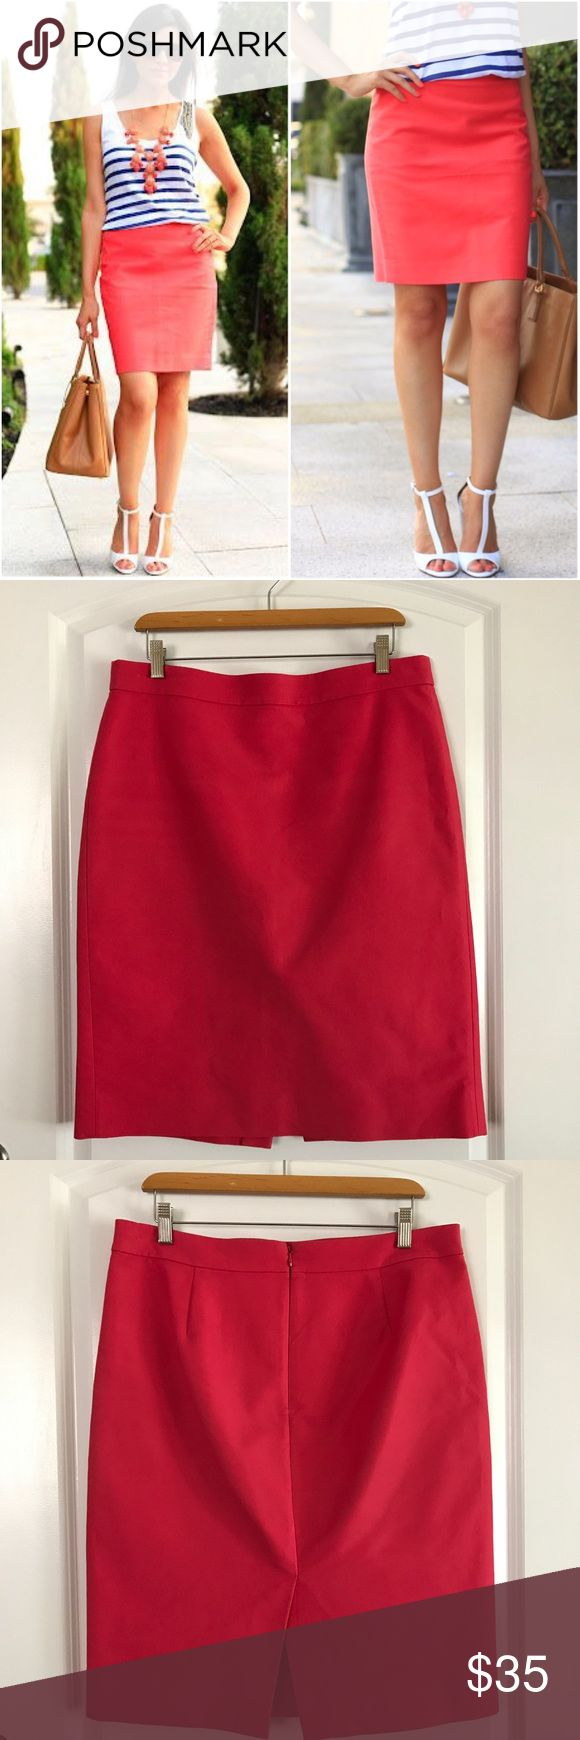 "J Crew No. 2 Pencil Skirt in Pink Amazing high quality pencil skirt from J Crew. Back zipper and slit. Made of cotton. Fully lined. Small spot of front of skirt (pic included). Across waist 17"", length 24"" J. Crew Skirts Pencil"